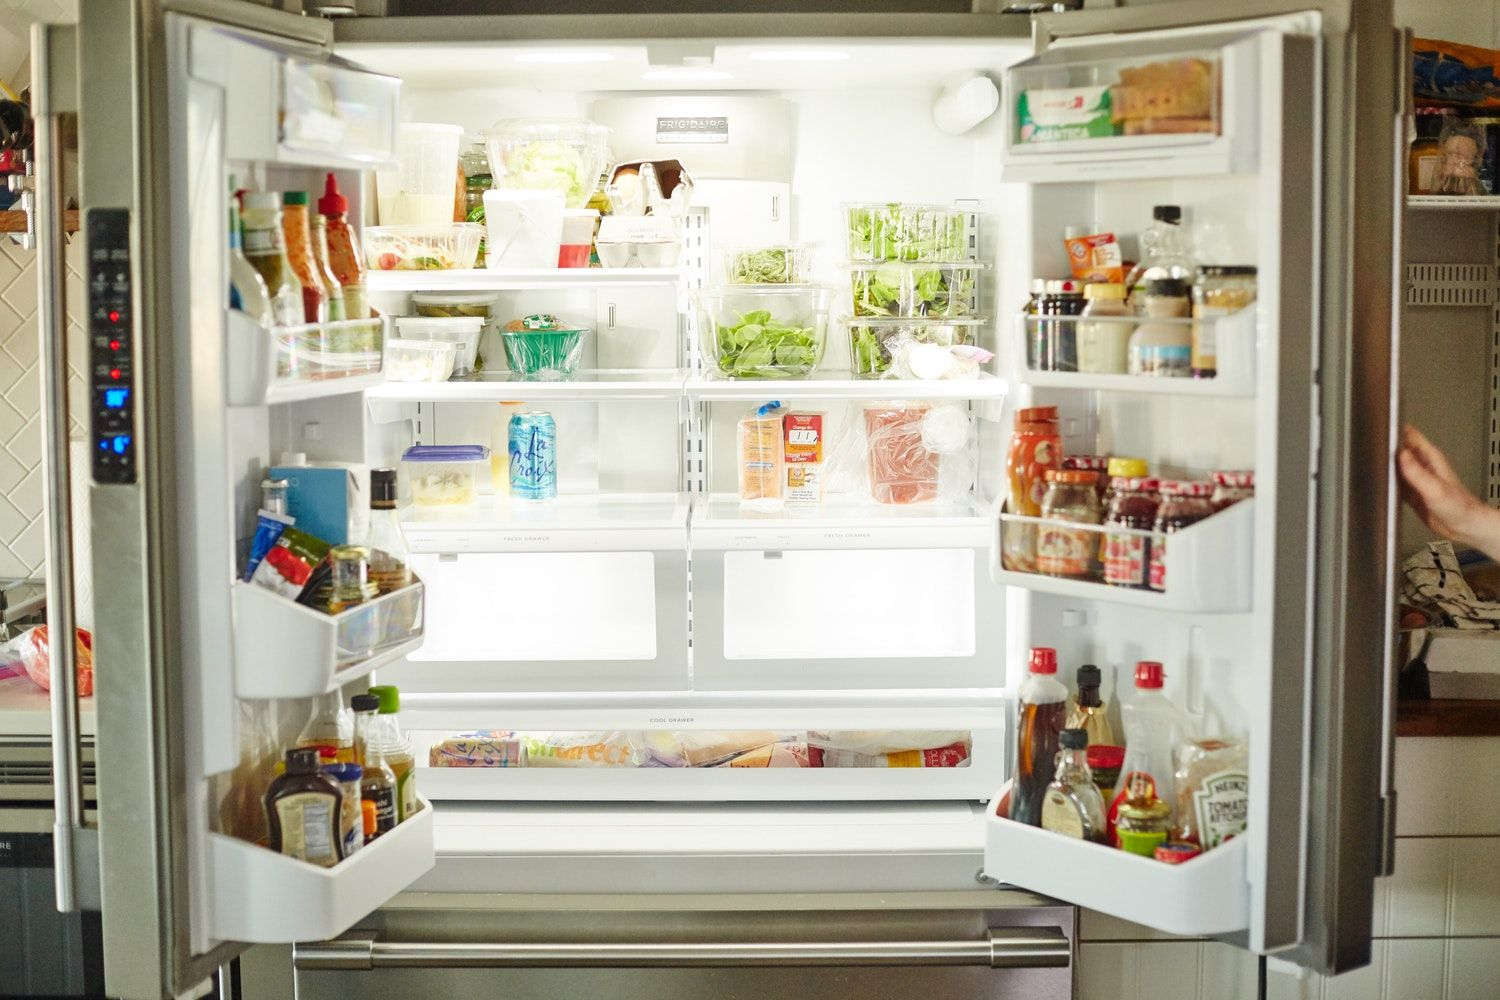 The Best Hacks for Organizing Your Refrigerator